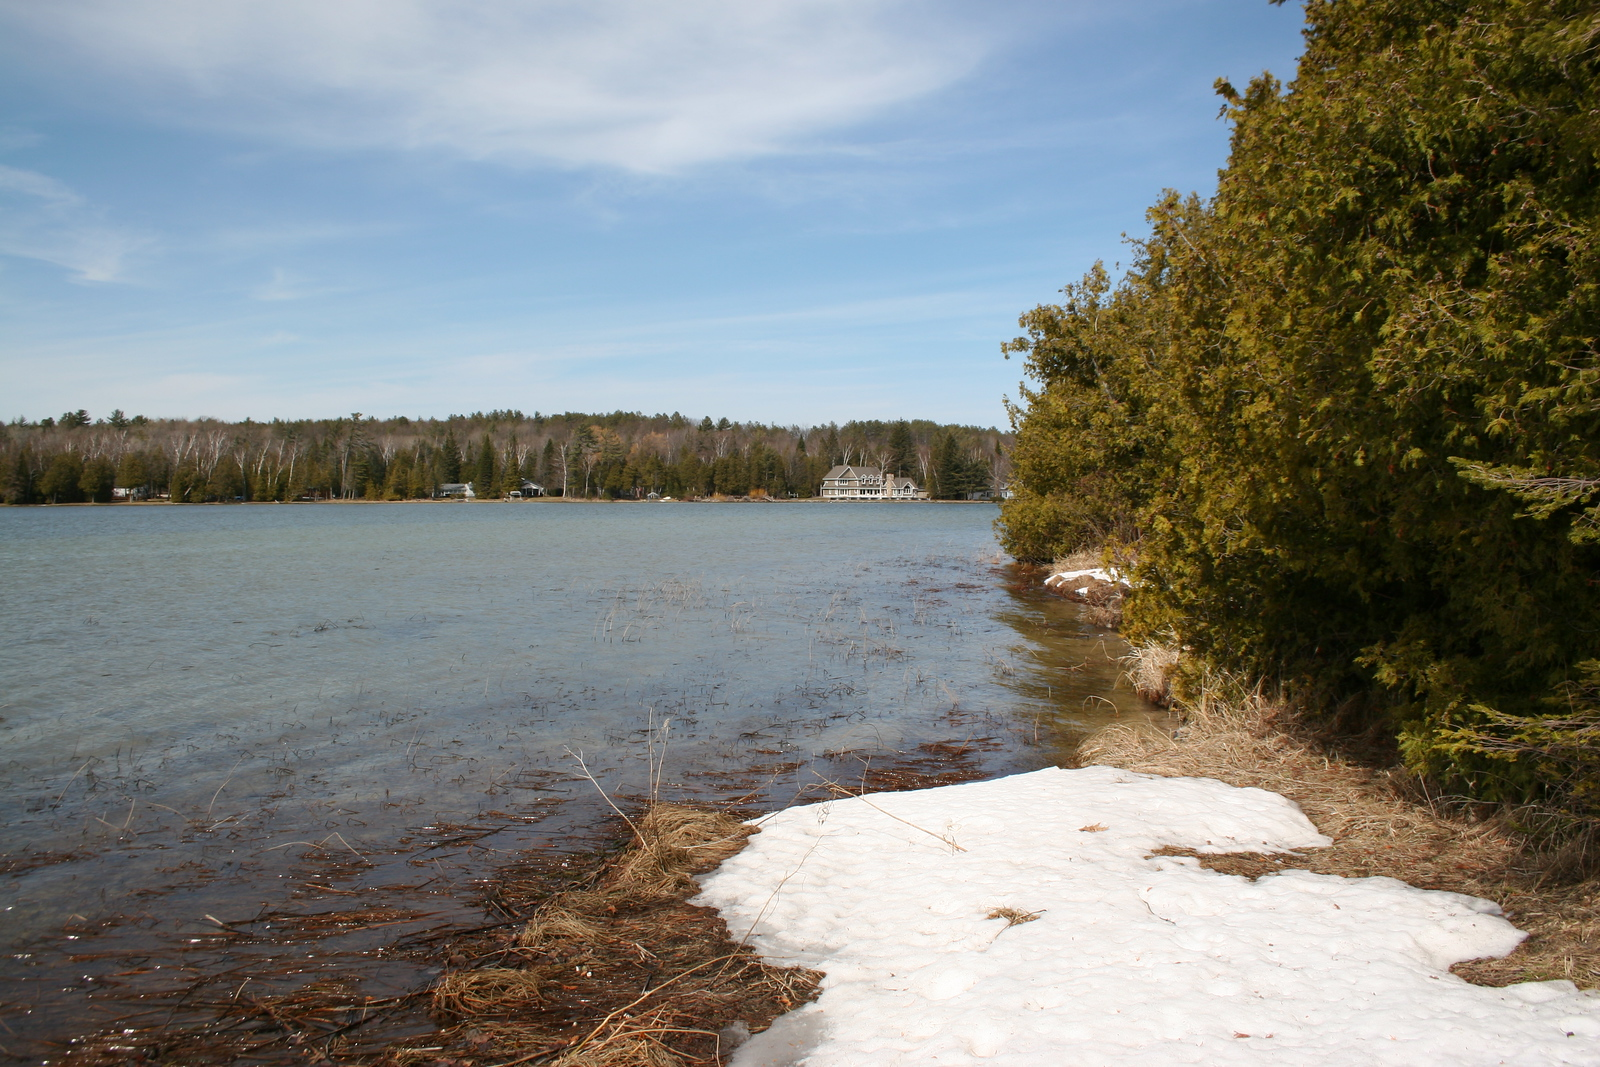 The trail peters out a bit short of the island's tip...a look across to the developed north shore of Crooked Lake...